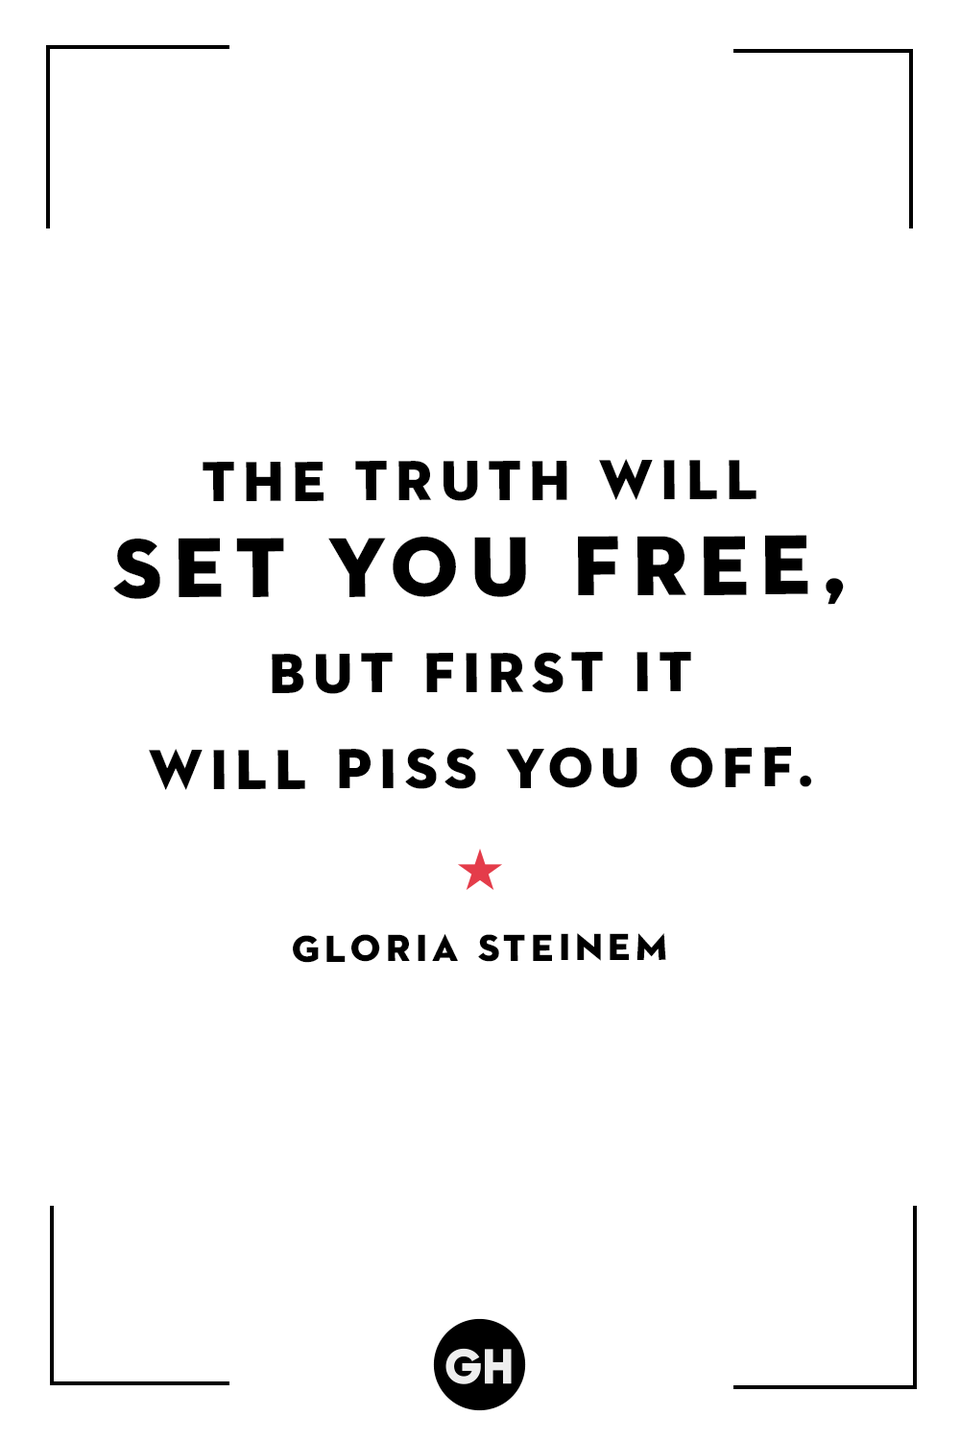 <p>The truth will set you free, but first it will piss you off.</p>